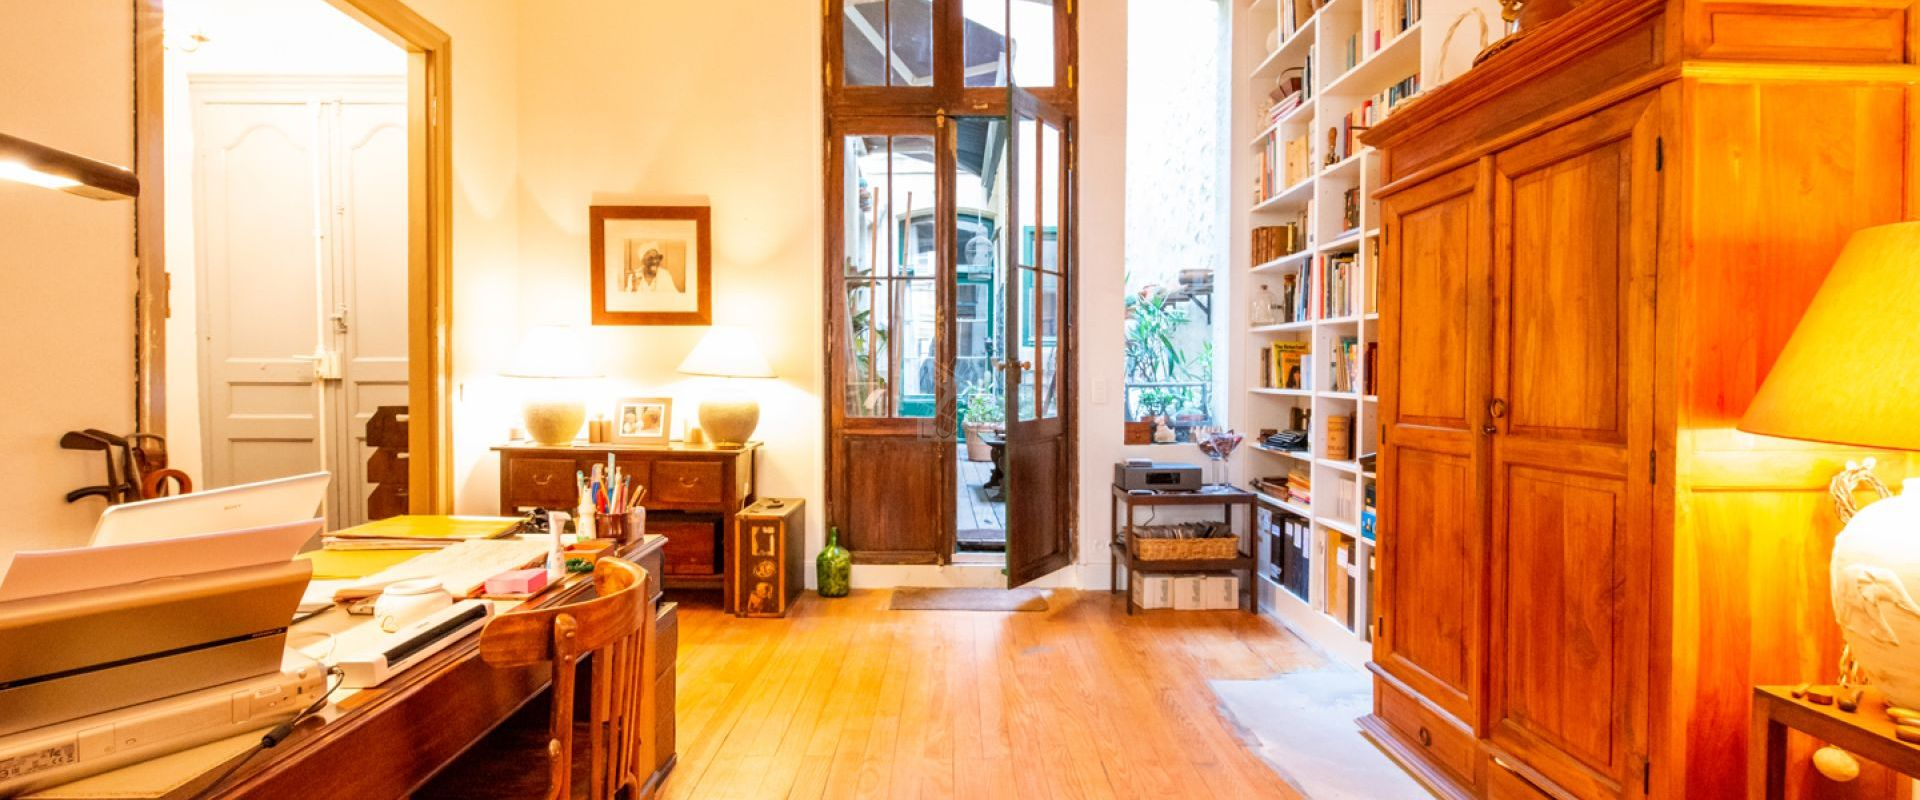 Renovated apartment in the heart of the Chartrons in Bordeaux